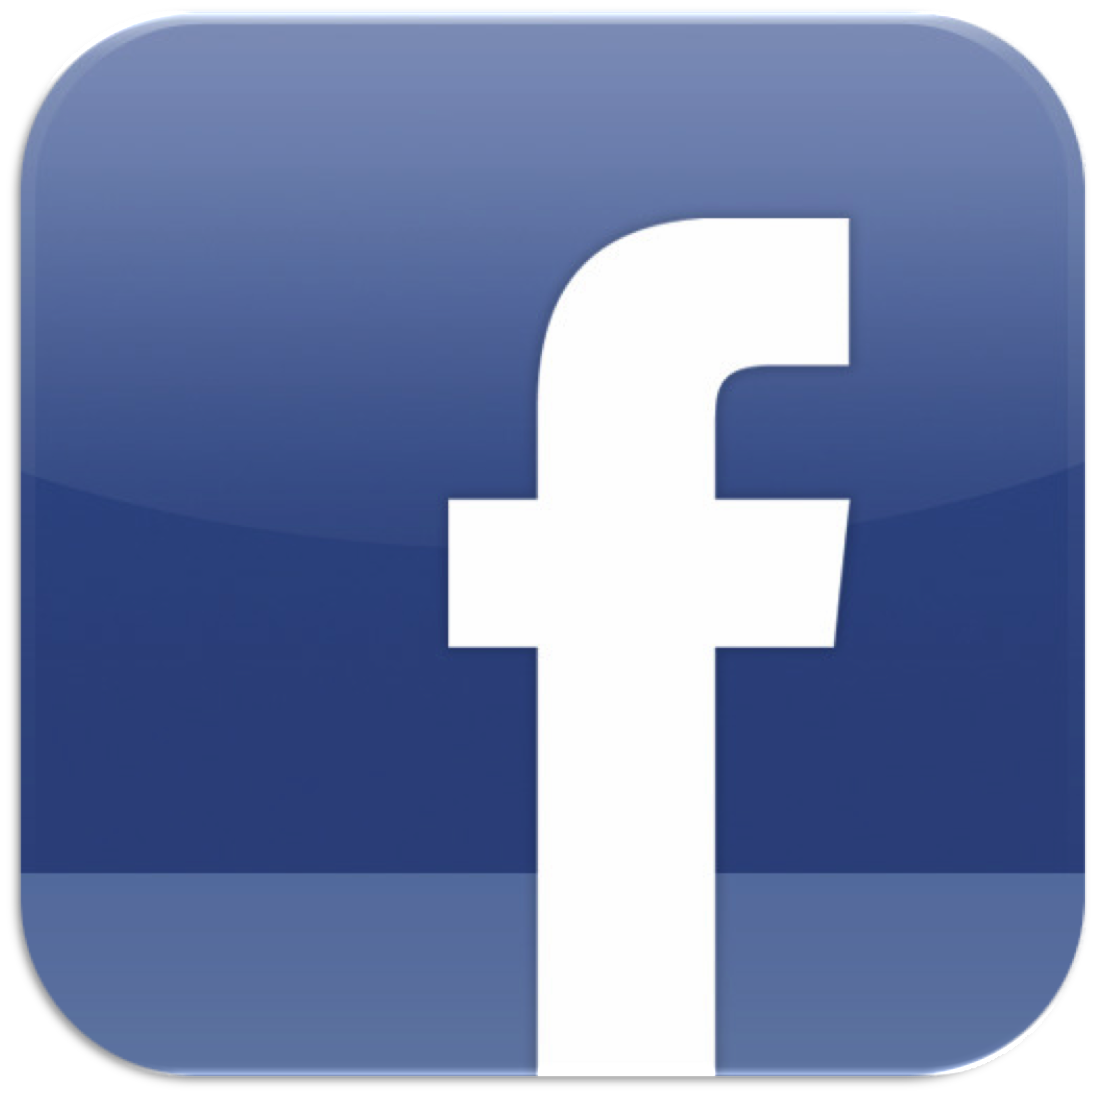 Facebook official icon 3g star wars news net facebook official icon 3g biocorpaavc